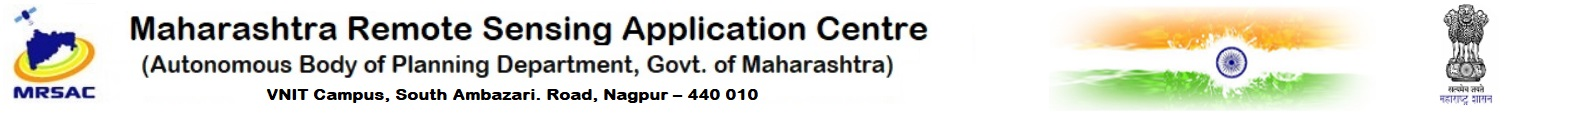 MAHARASHTRA REMOTE SENSING APPLICATION CENTRE